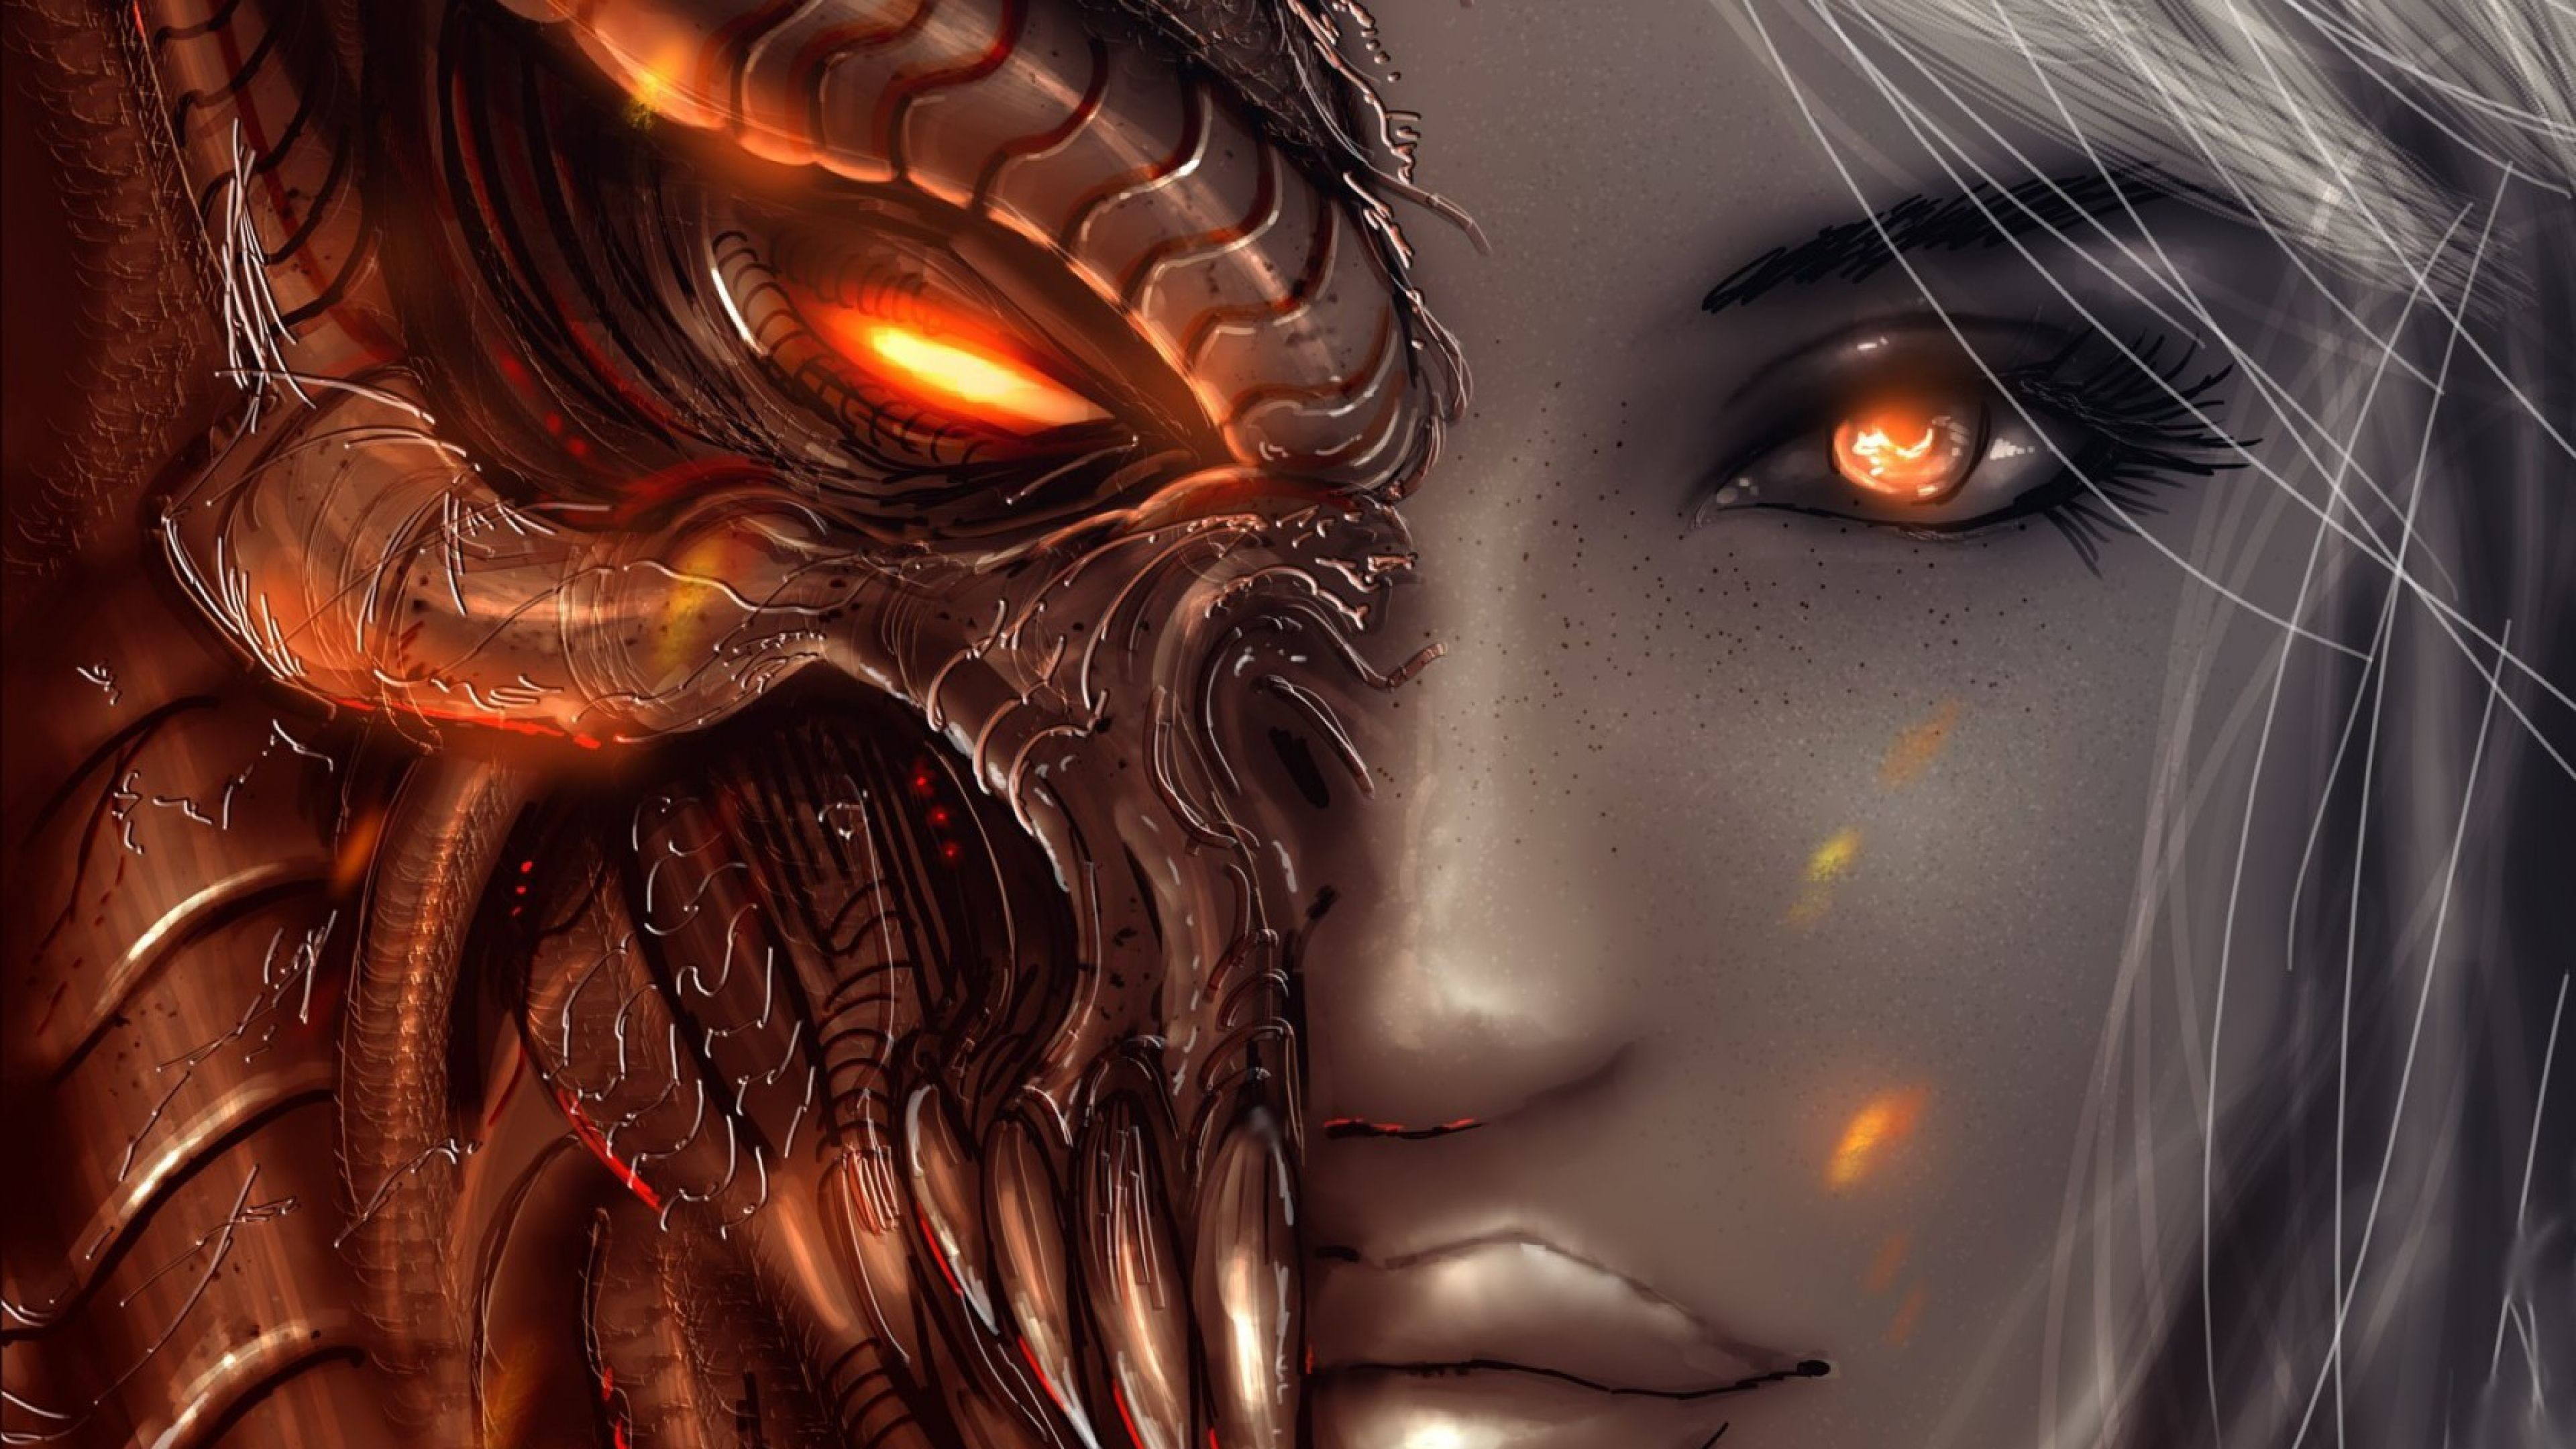 3840x2160 0 Demon Angel Wallpapers Group Demon Angel Wallpapers Group